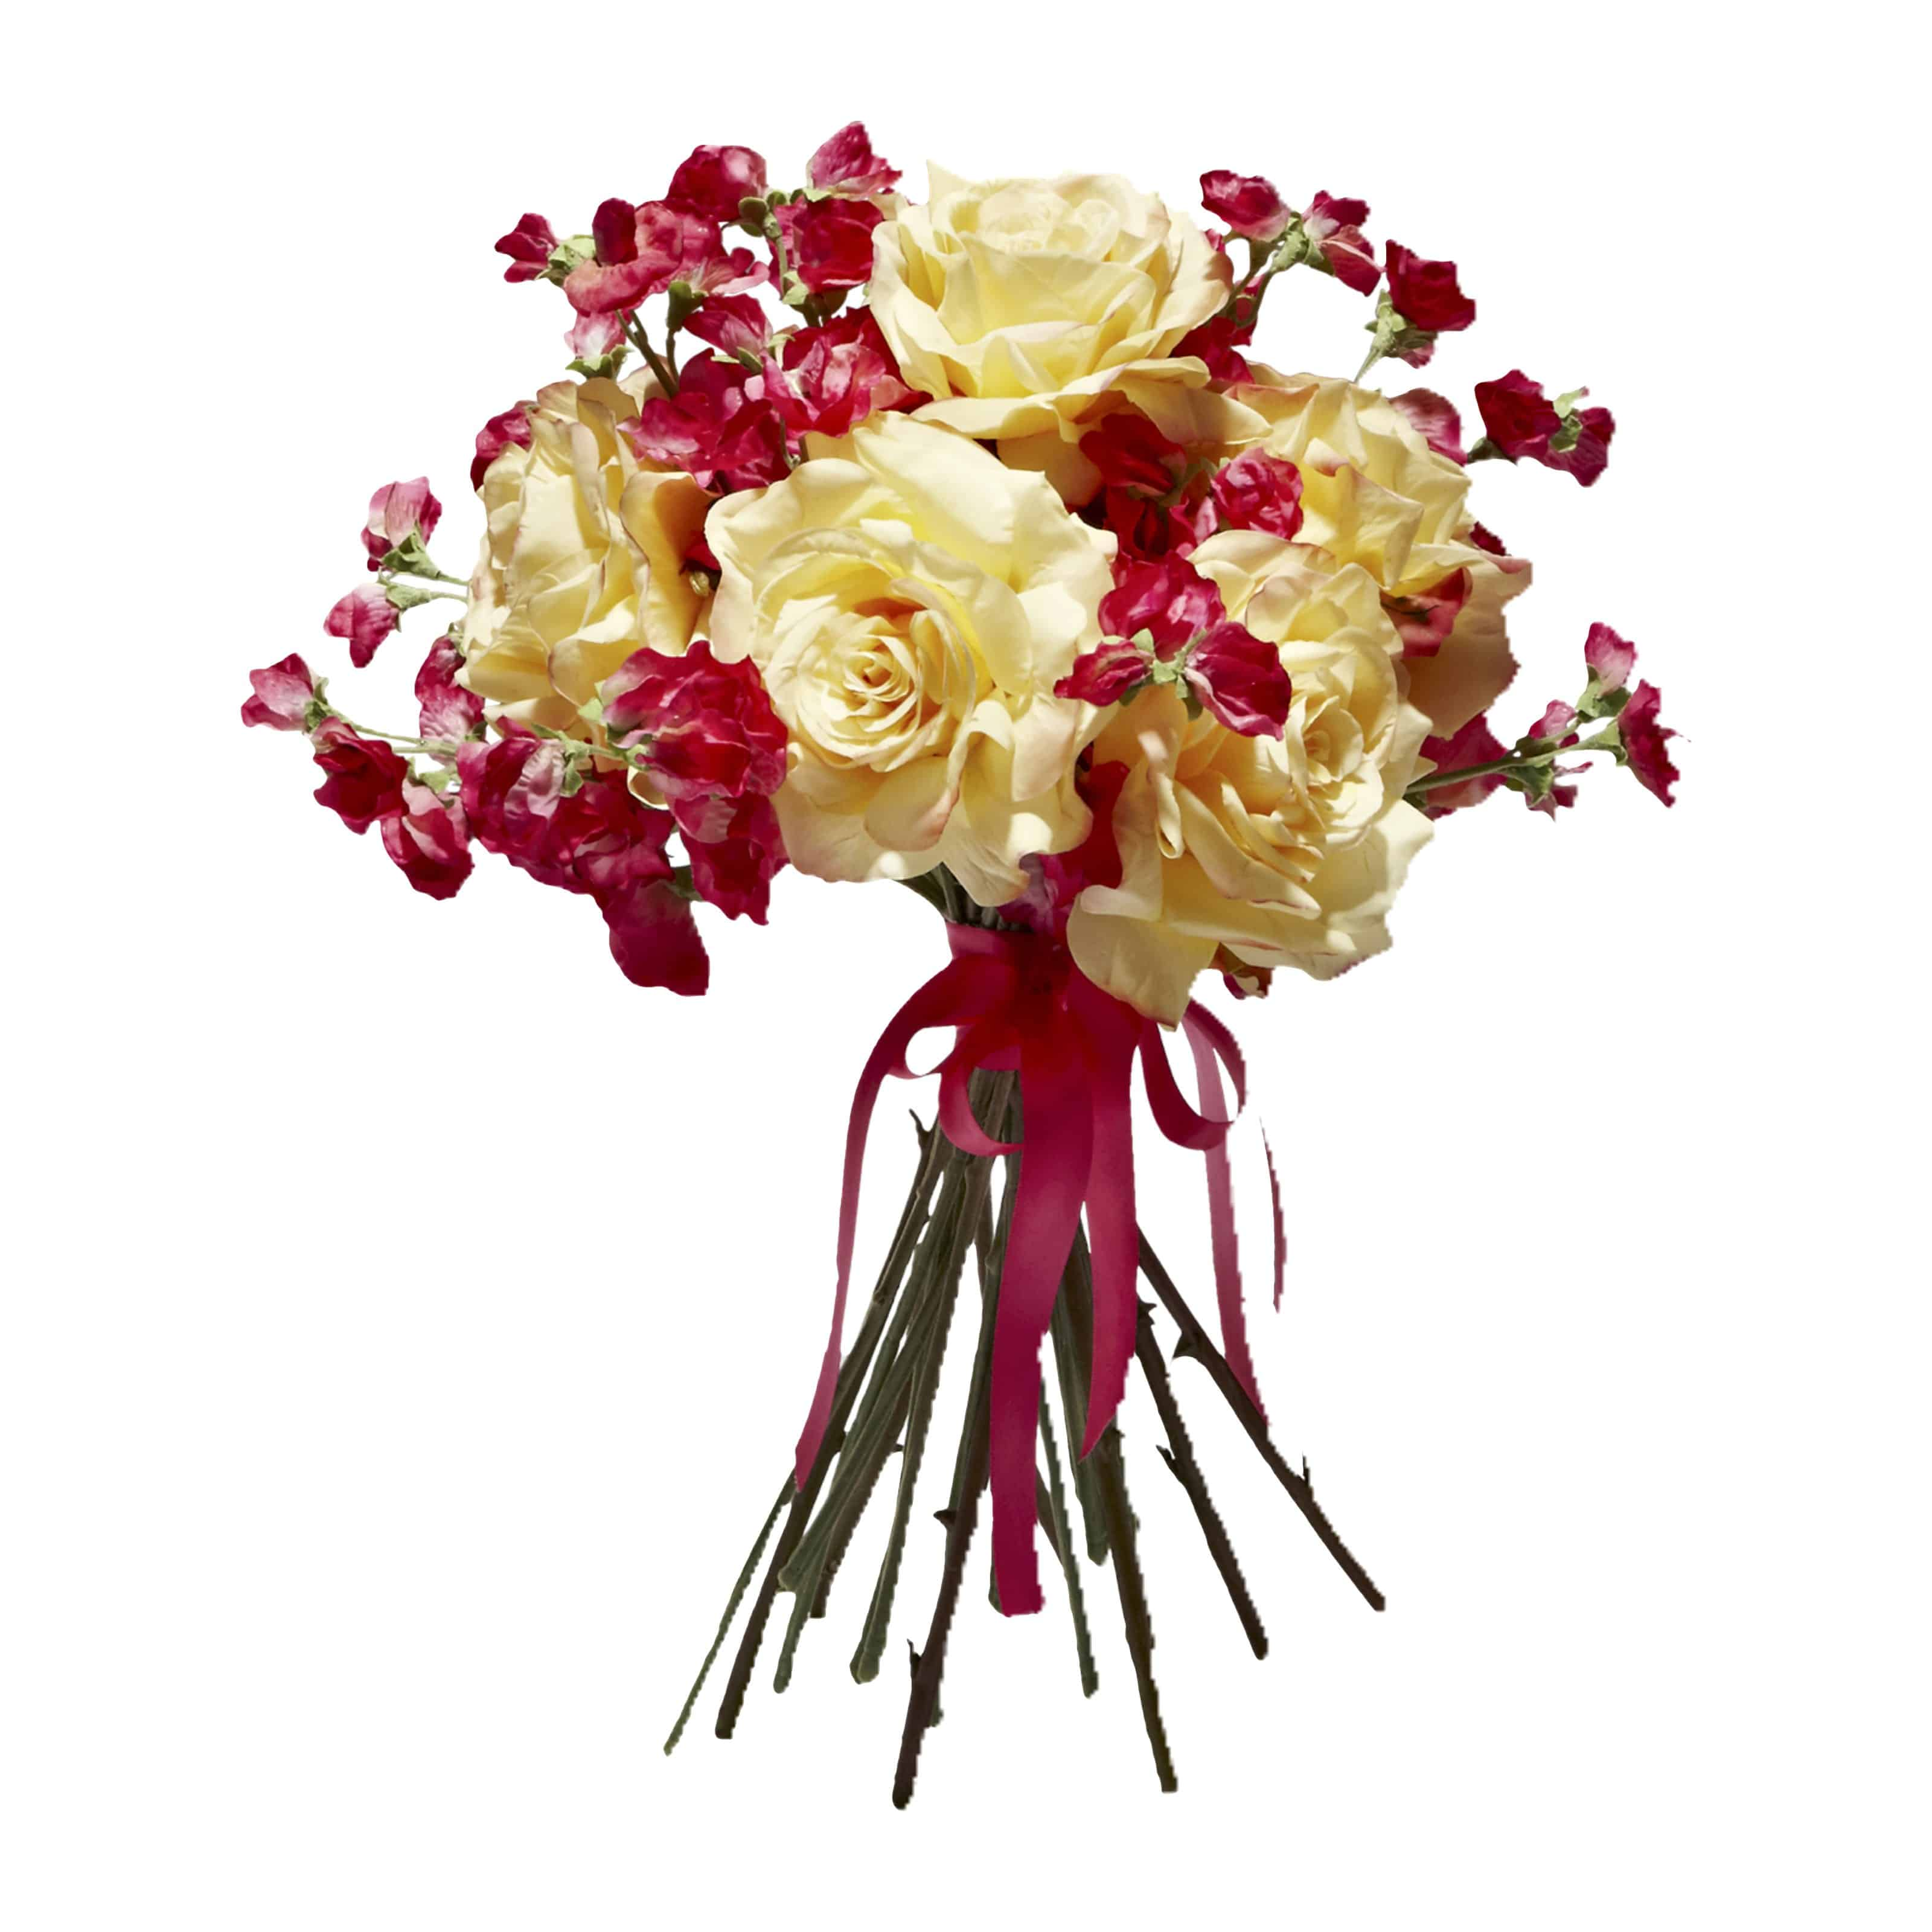 Adore our lovely summer floral bouquet with faux pink fuchsia sweet pea flowers & perfect imitation English garden yellow silk rose flowers for a warm aura.